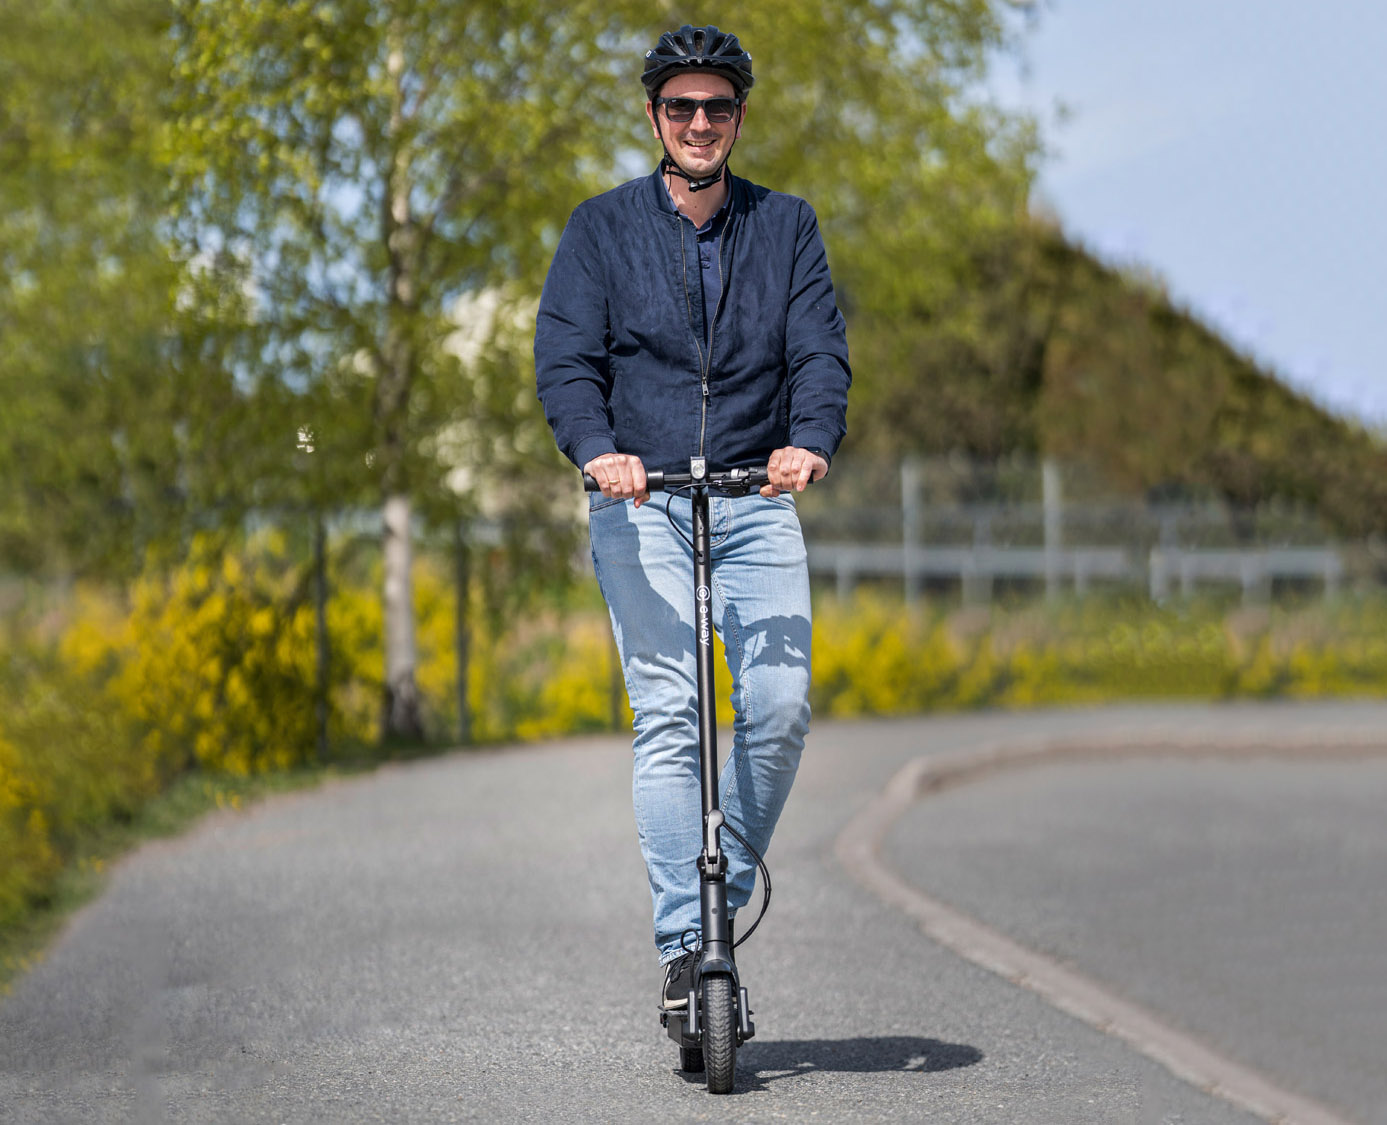 Electric-scooter_Eway-E2Pro_downhill_web2.jpg